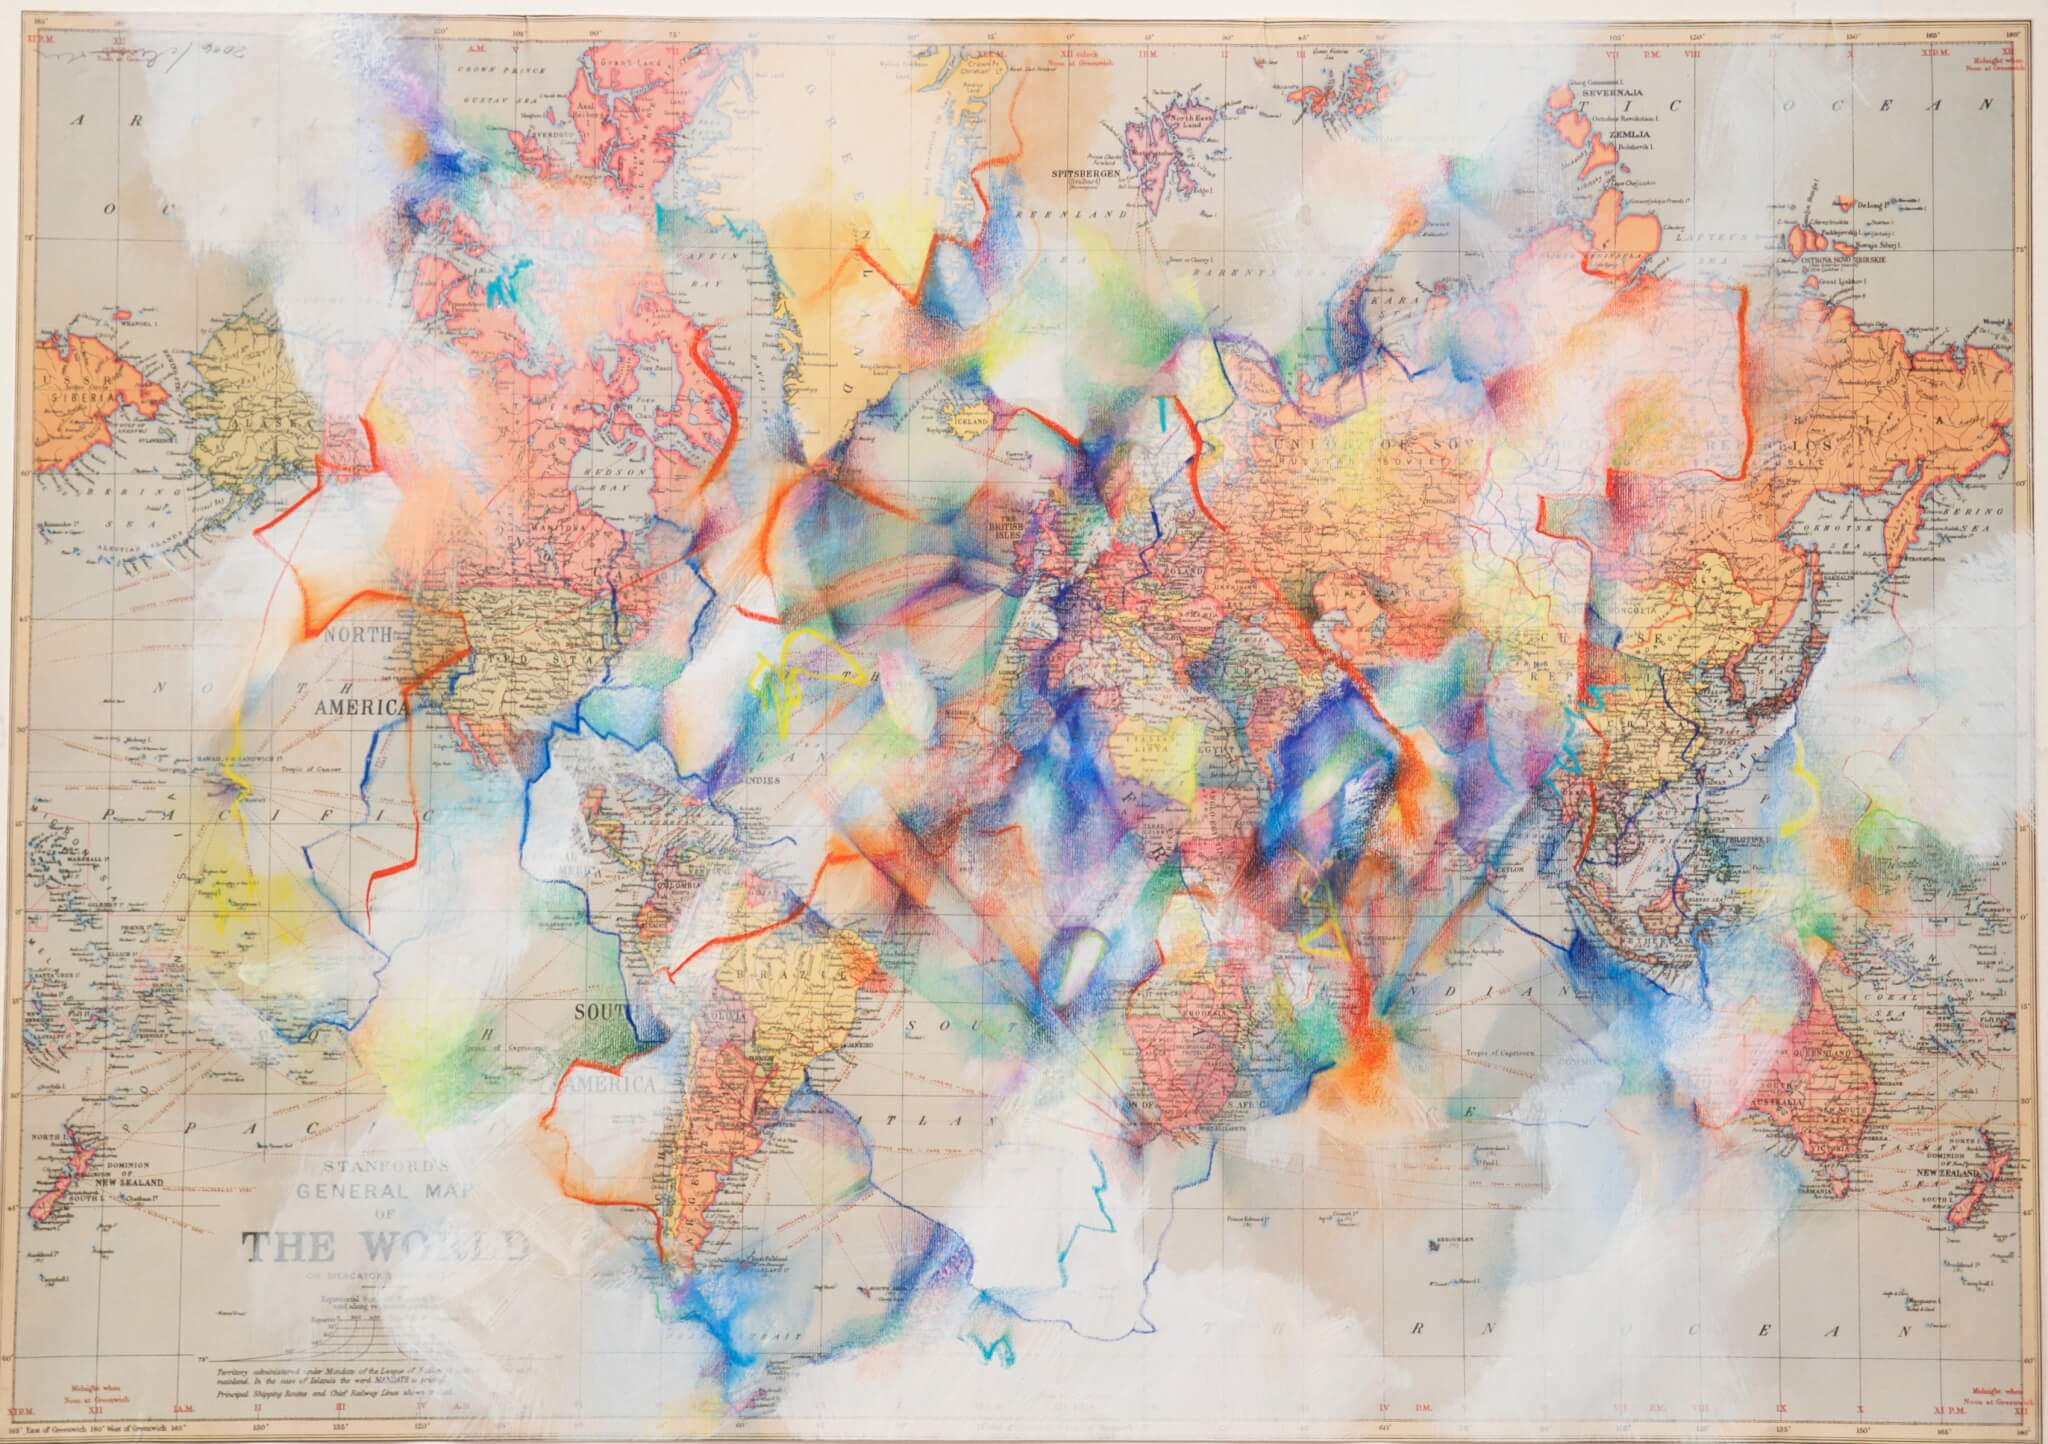 Mapping, no.2, 2016, 50 x 70 cm, Farbstift auf Reprint